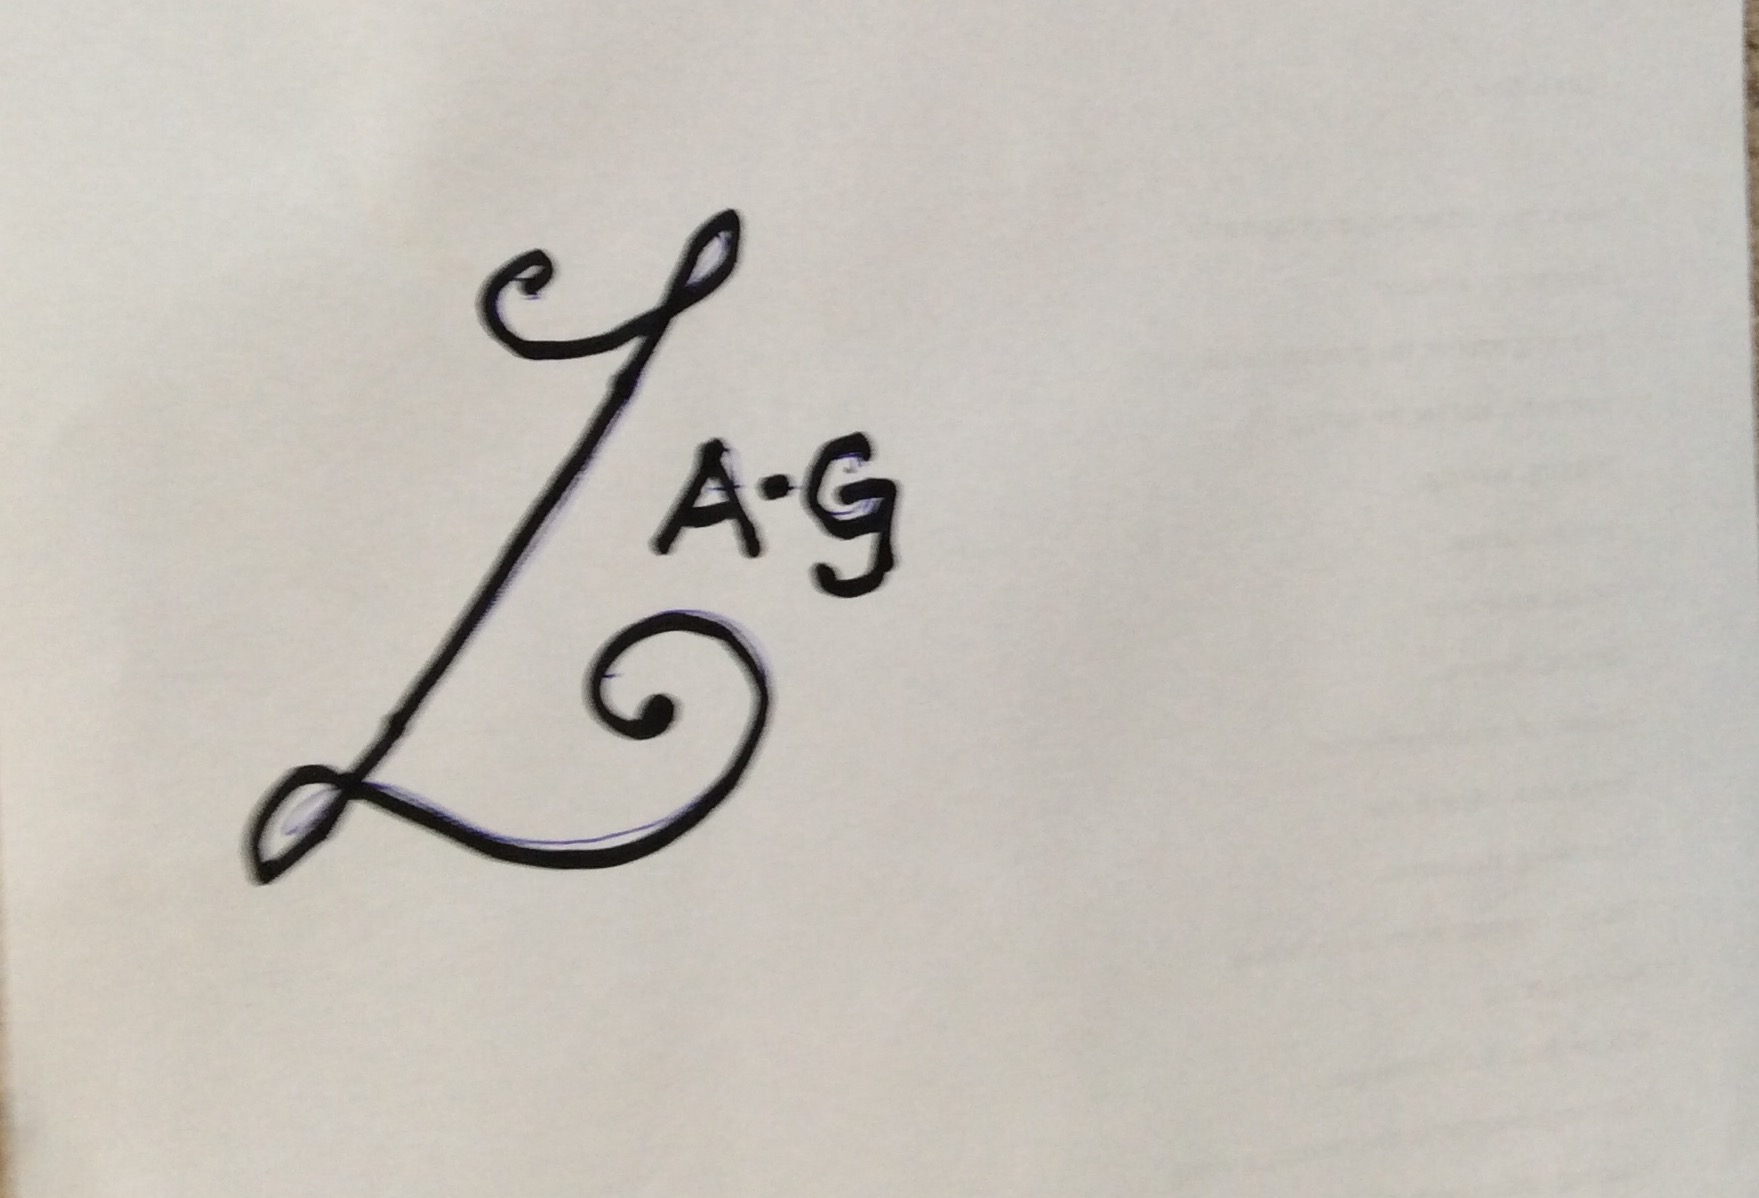 zoe ainsworth-grigg's Signature